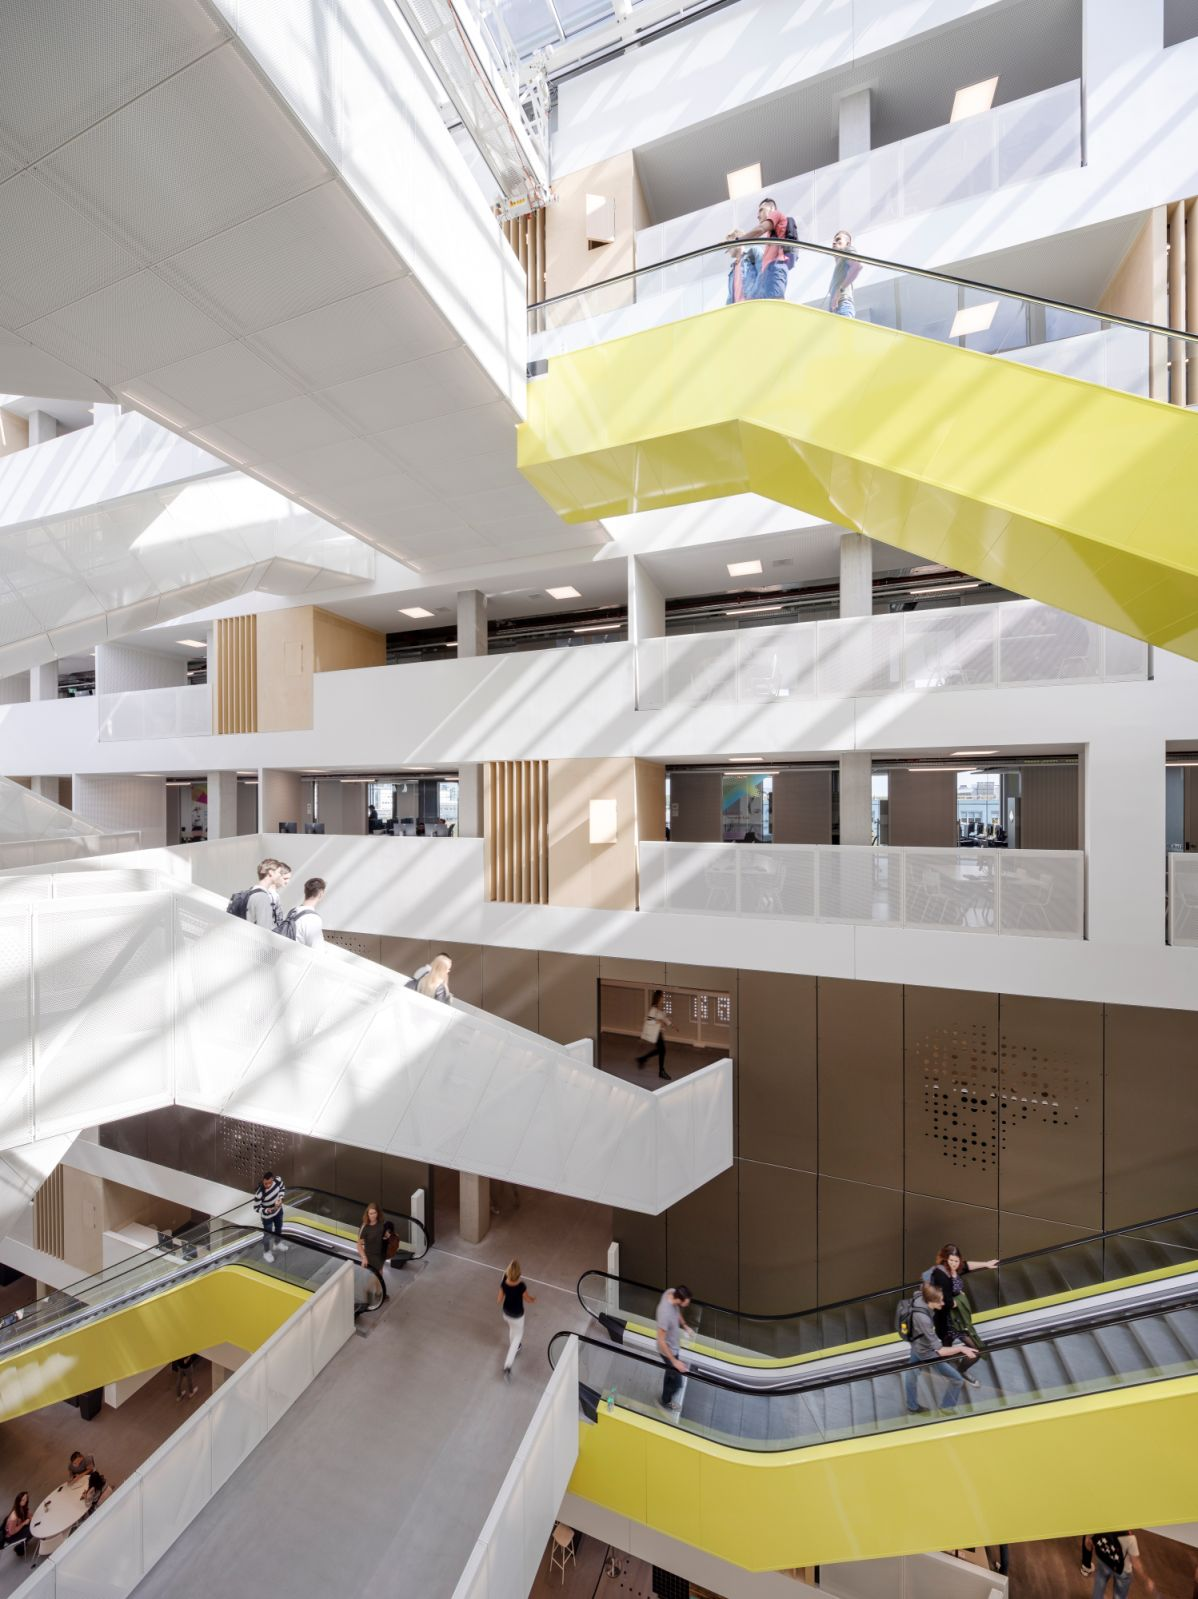 New education building